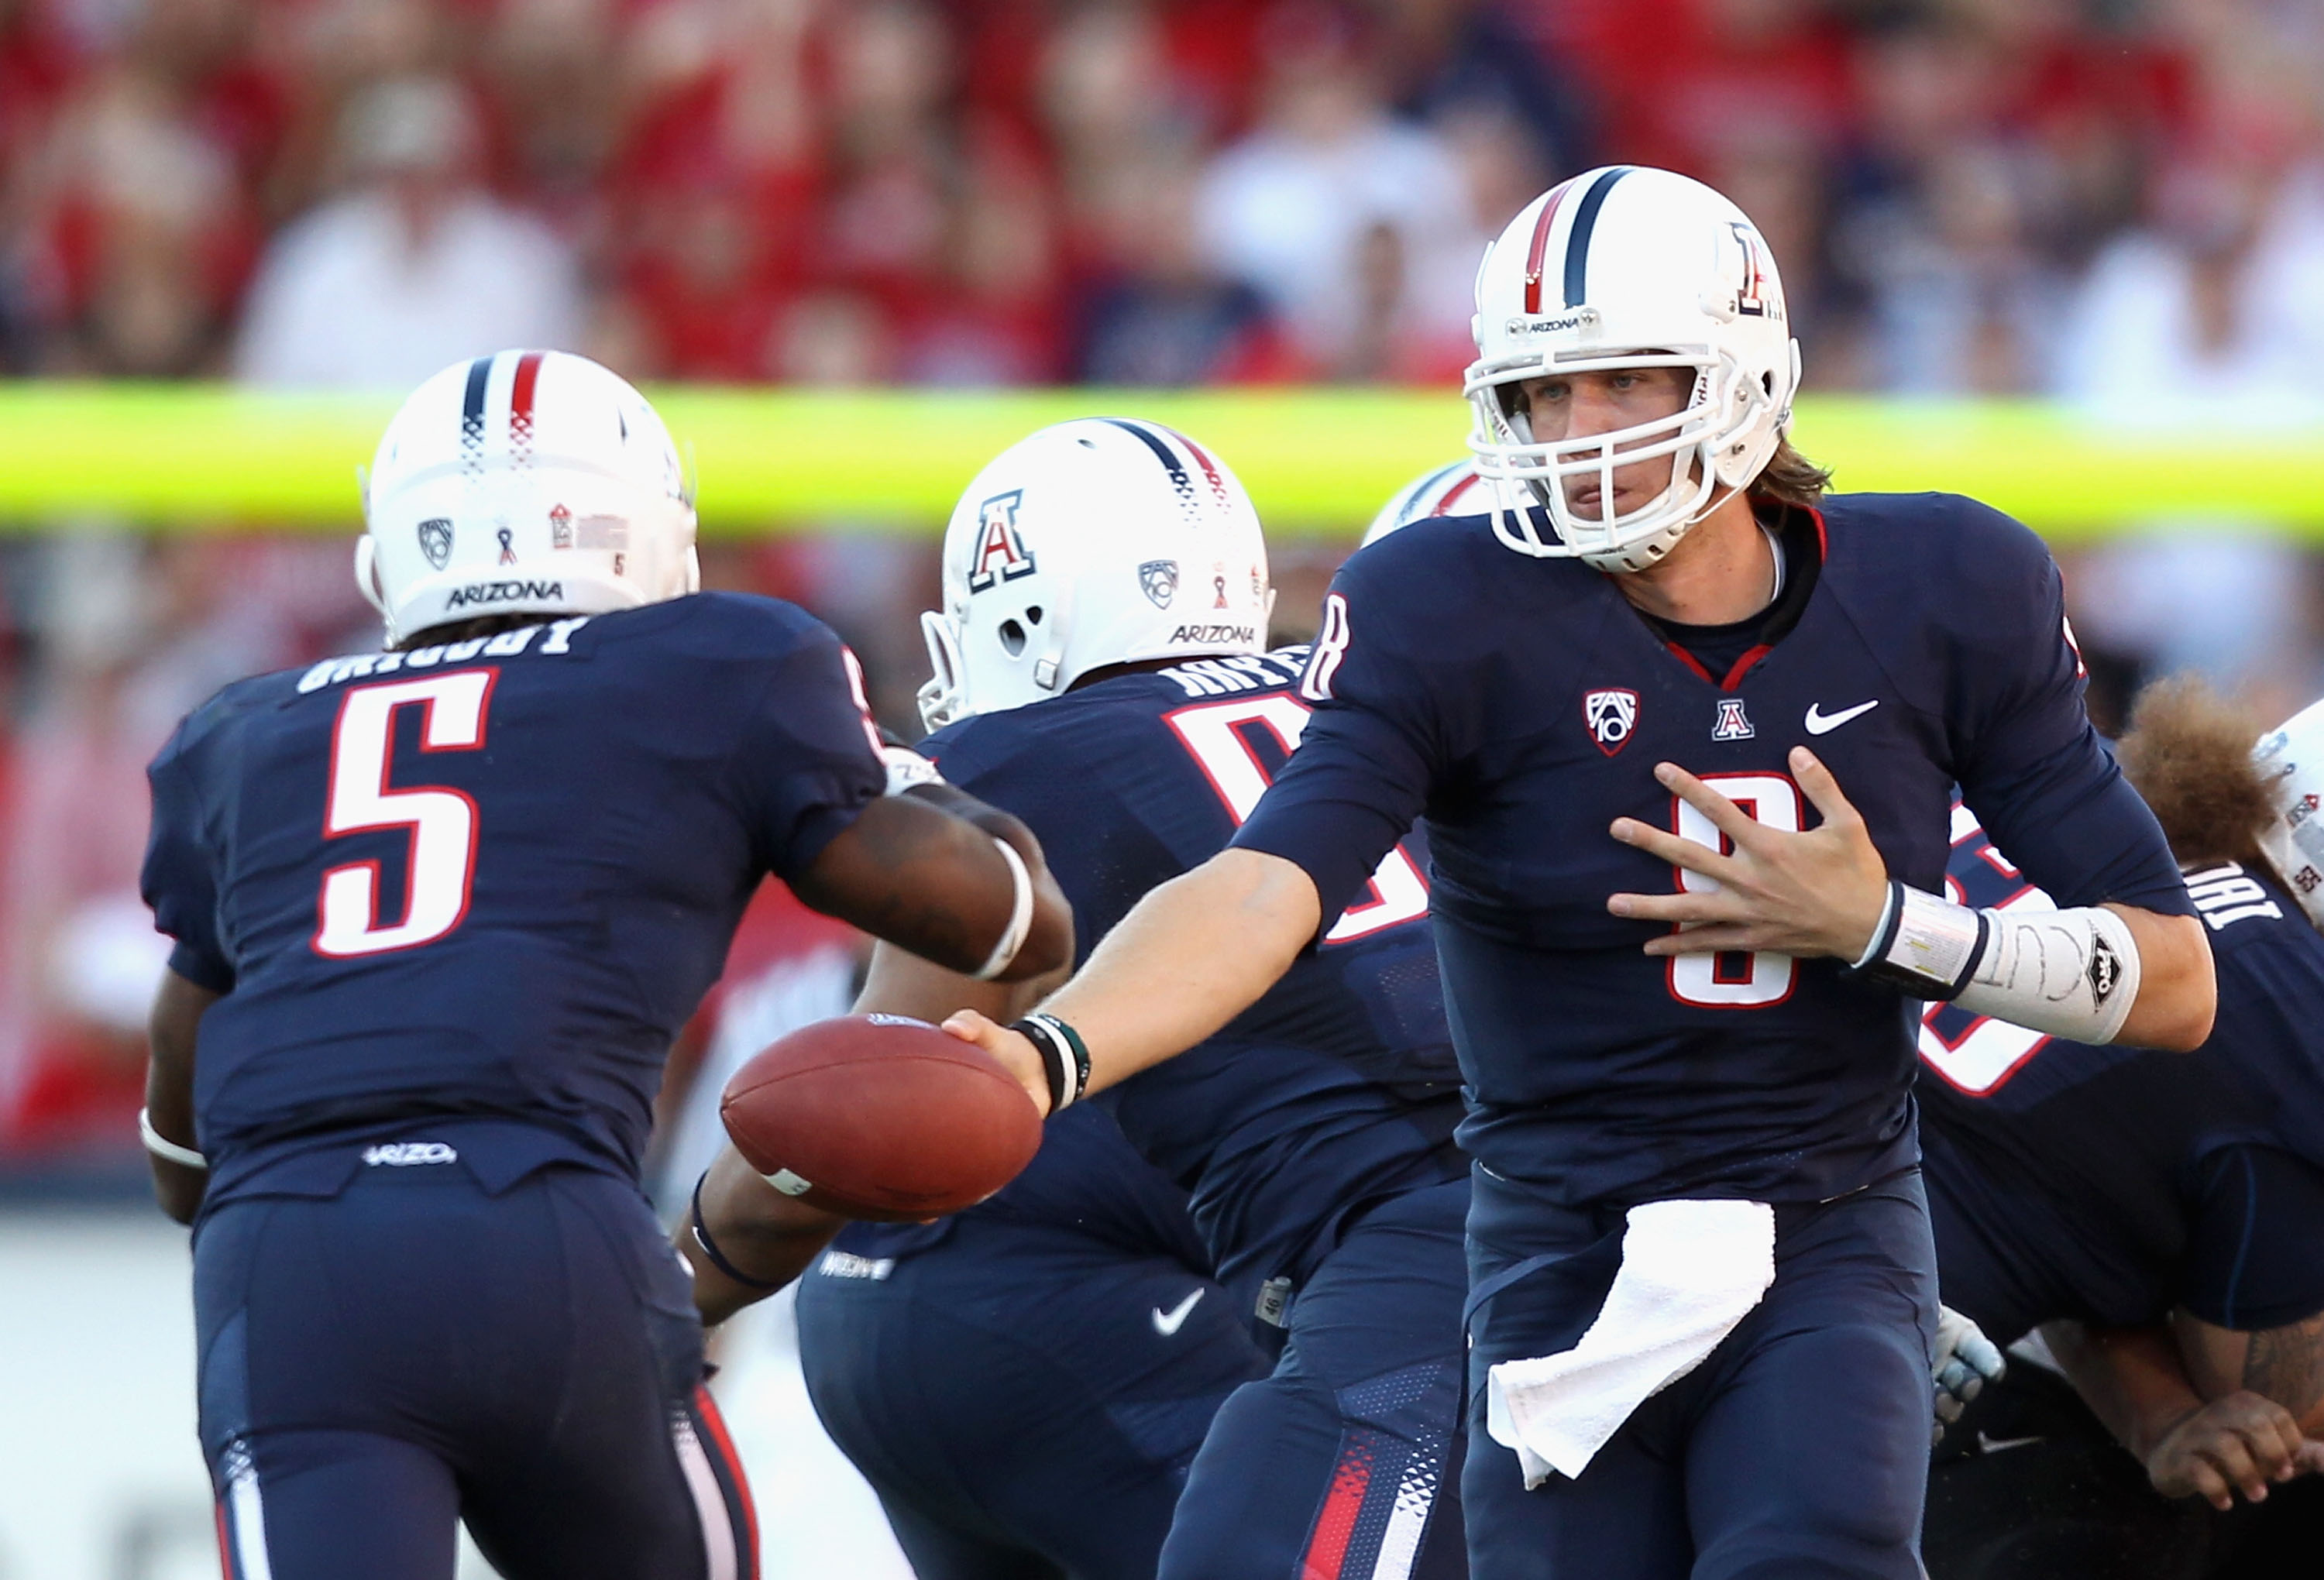 TUCSON, AZ - OCTOBER 09:  Quarterback Nick Foles #8 of the Arizona Wildcats  during the college football game against the Oregon State Beavers at Arizona Stadium on October 9, 2010 in Tucson, Arizona.  The Beavers defeated the Wildcats 29-27.  (Photo by C